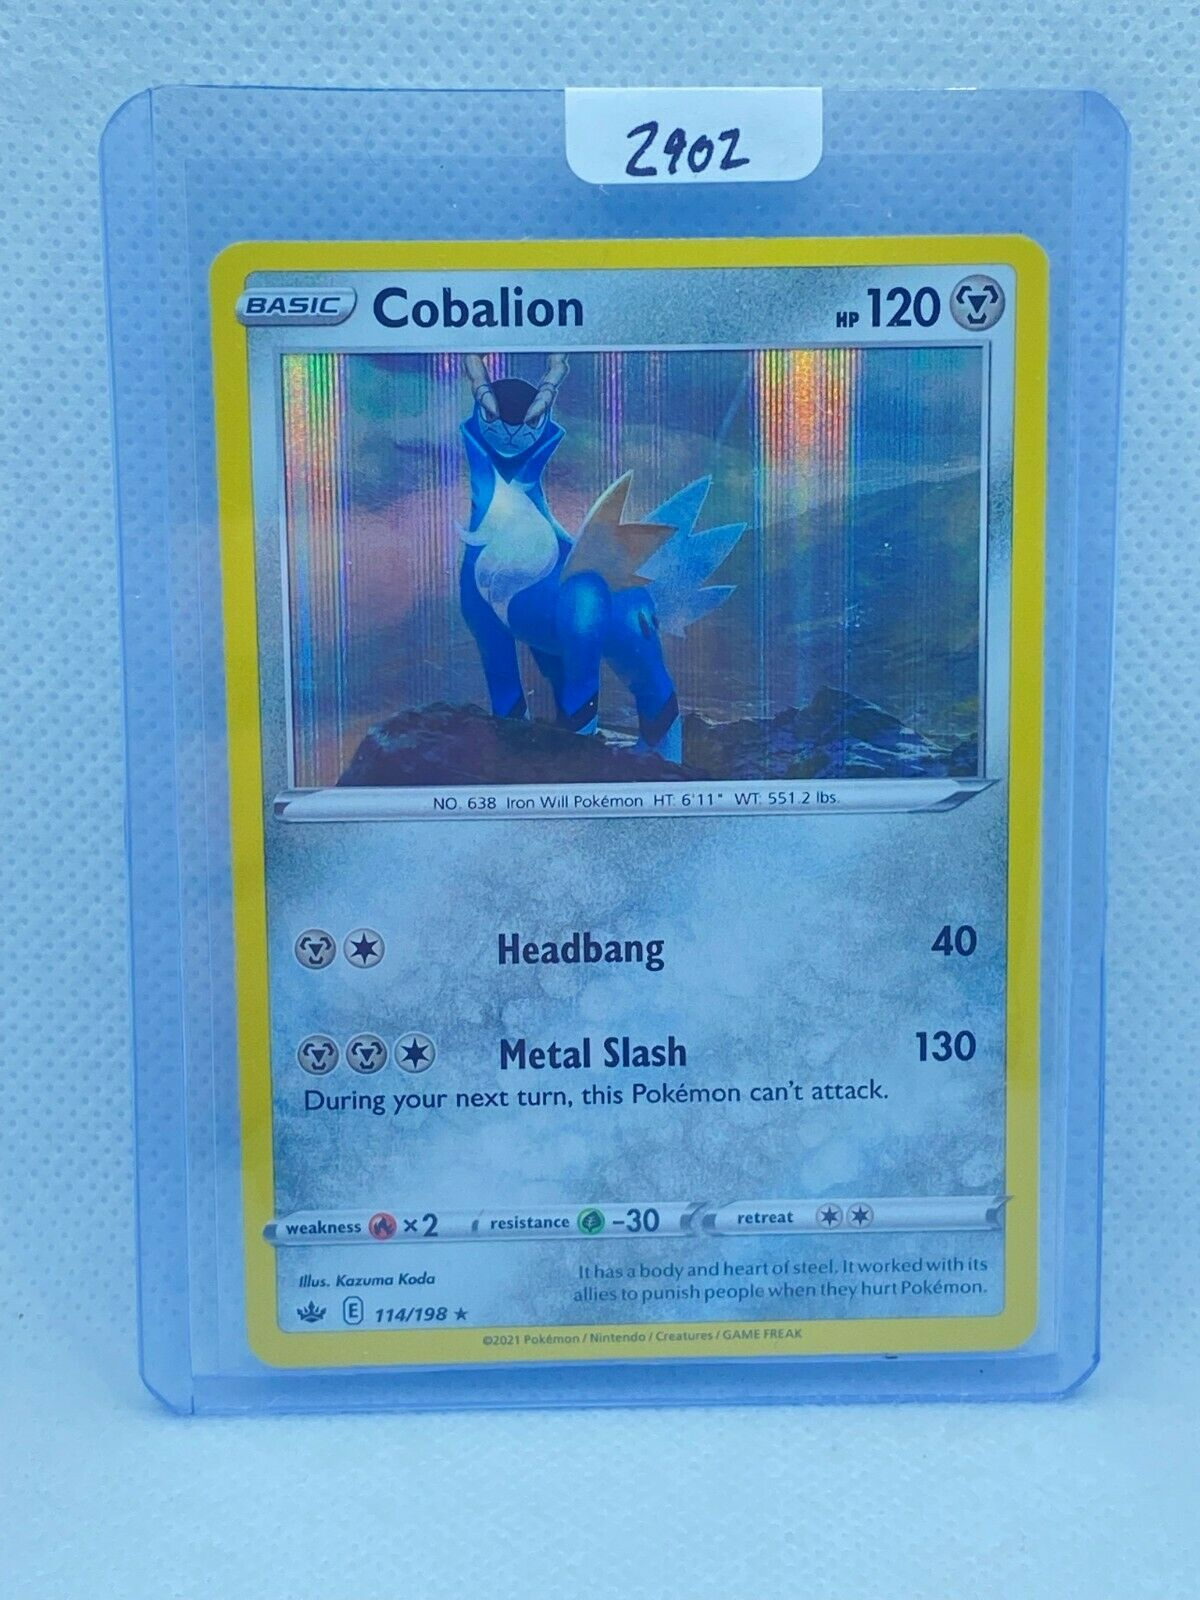 Pokémon TCG Cobalion Holo 114/198 | Chilling Reign | Play/Grade Ready